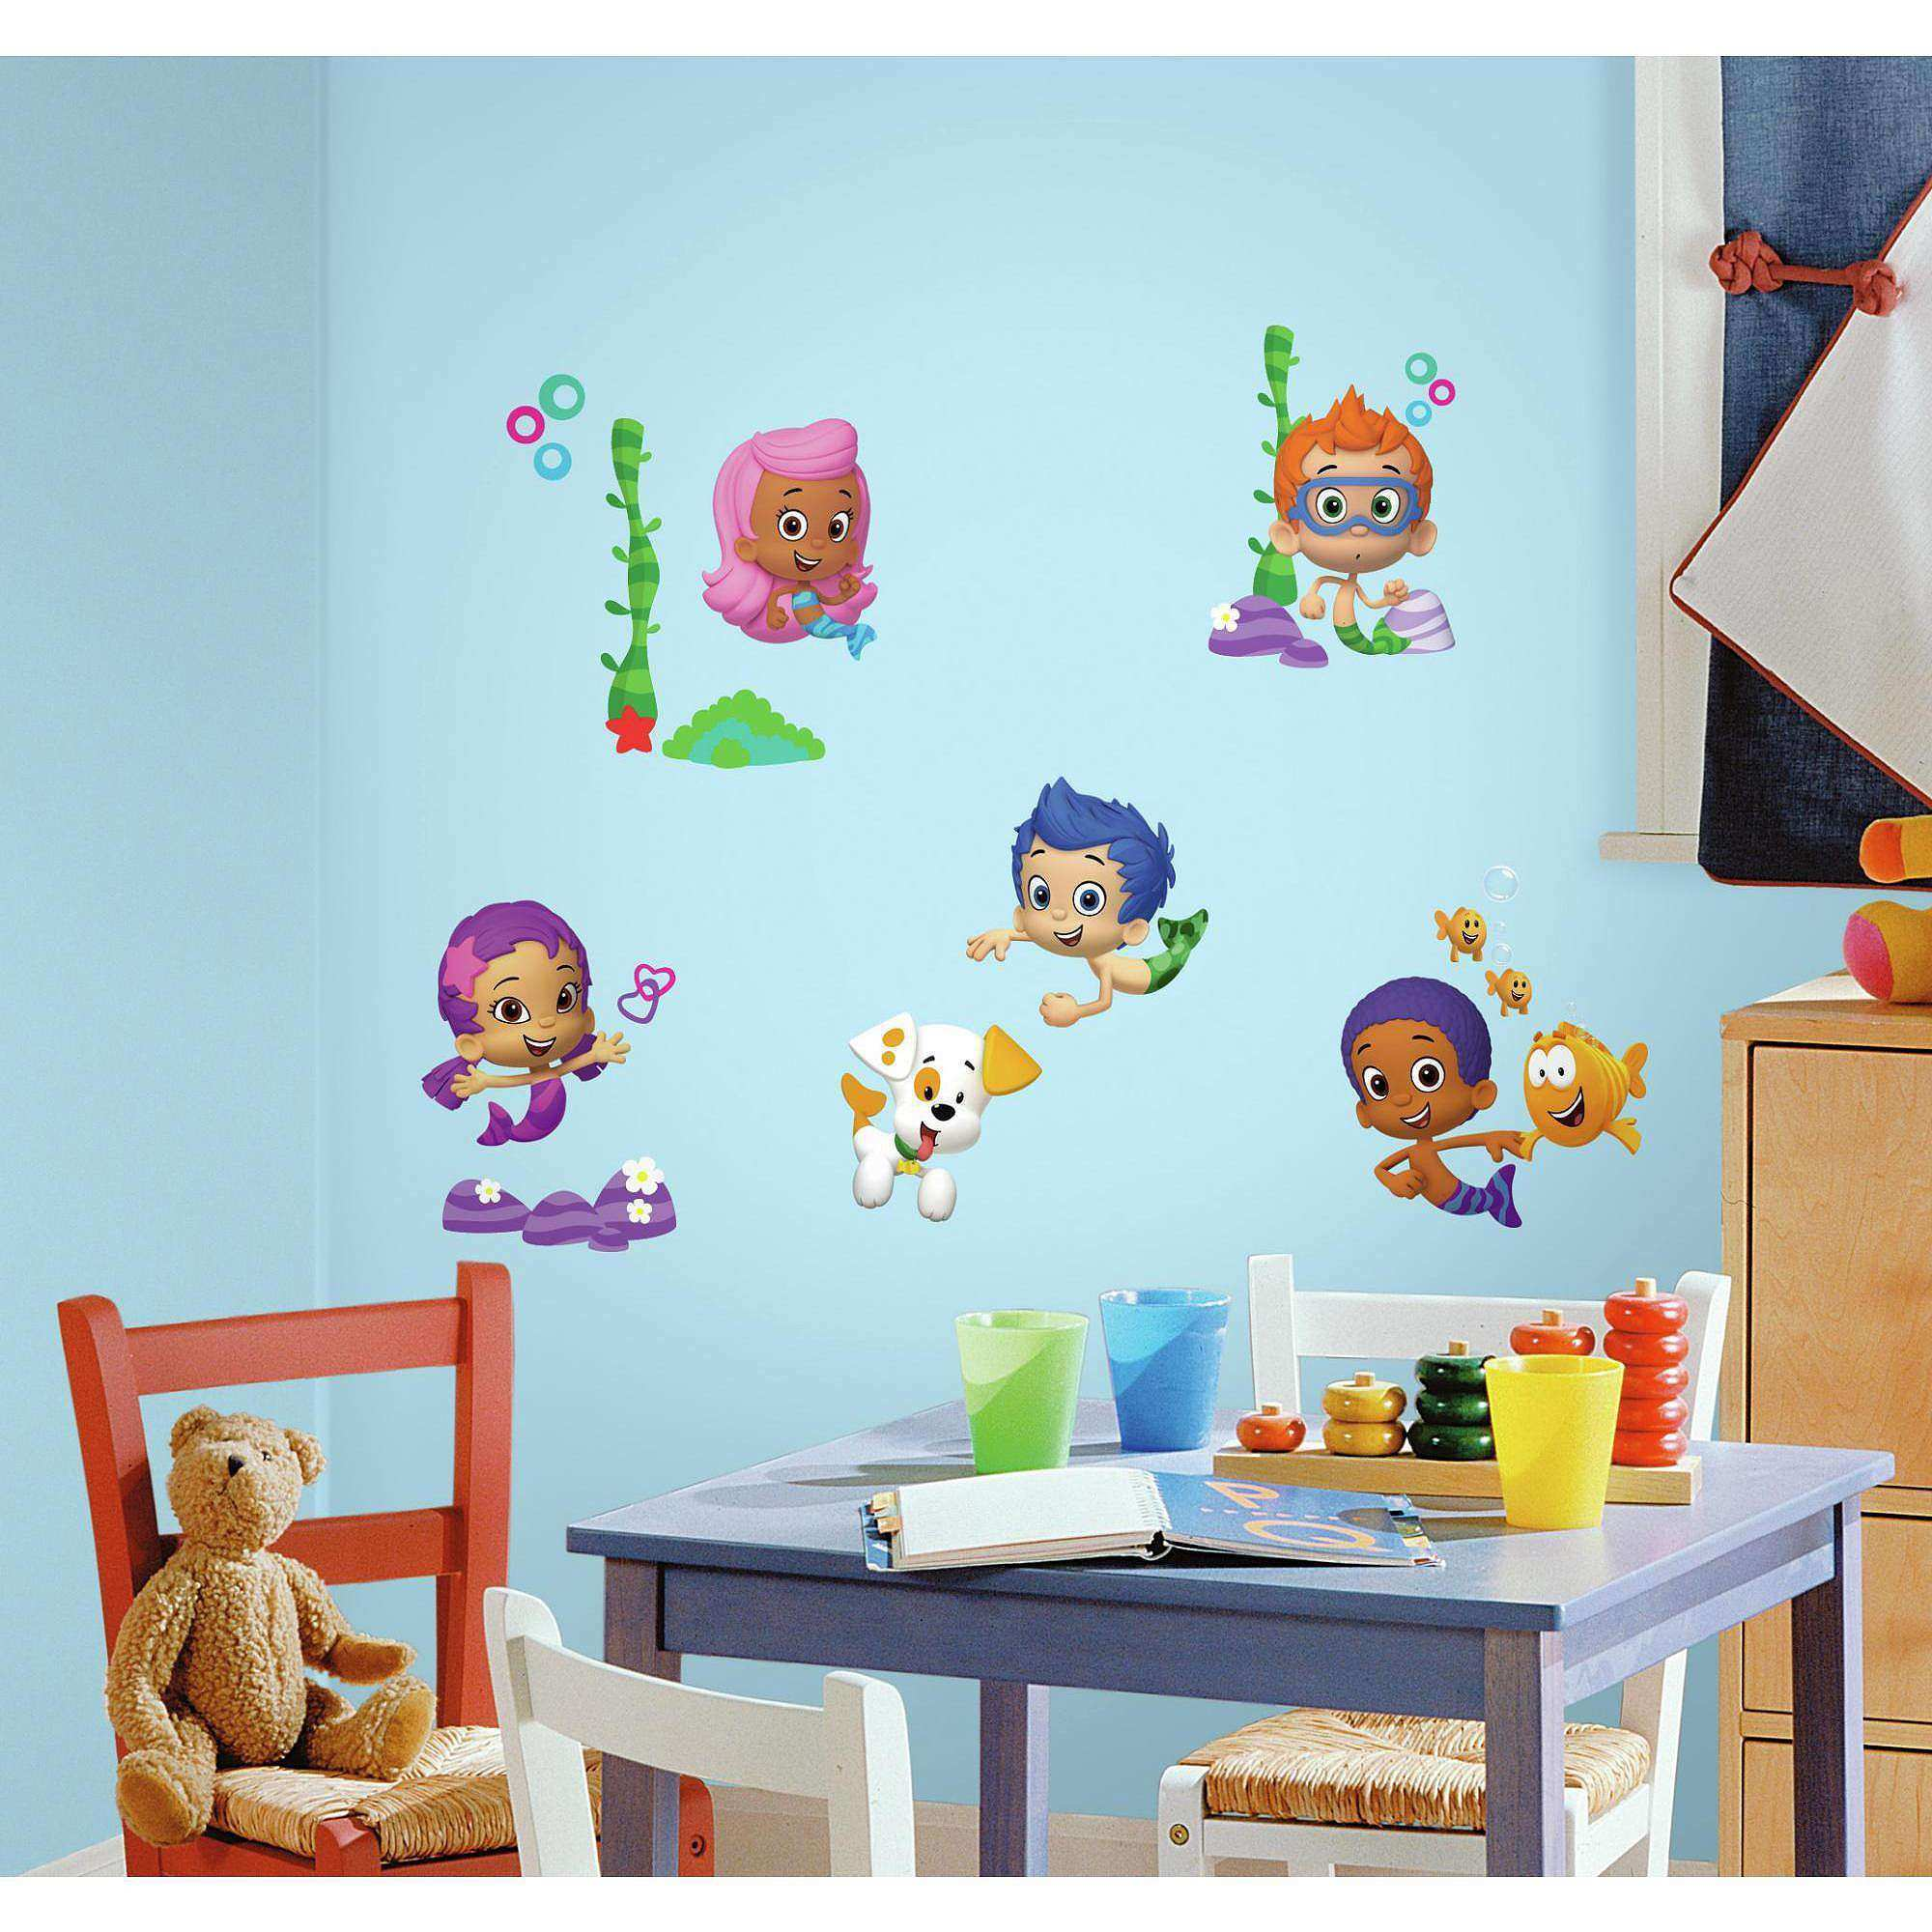 Bubble Guppies Peel And Stick Wall Decals Walmart idolza